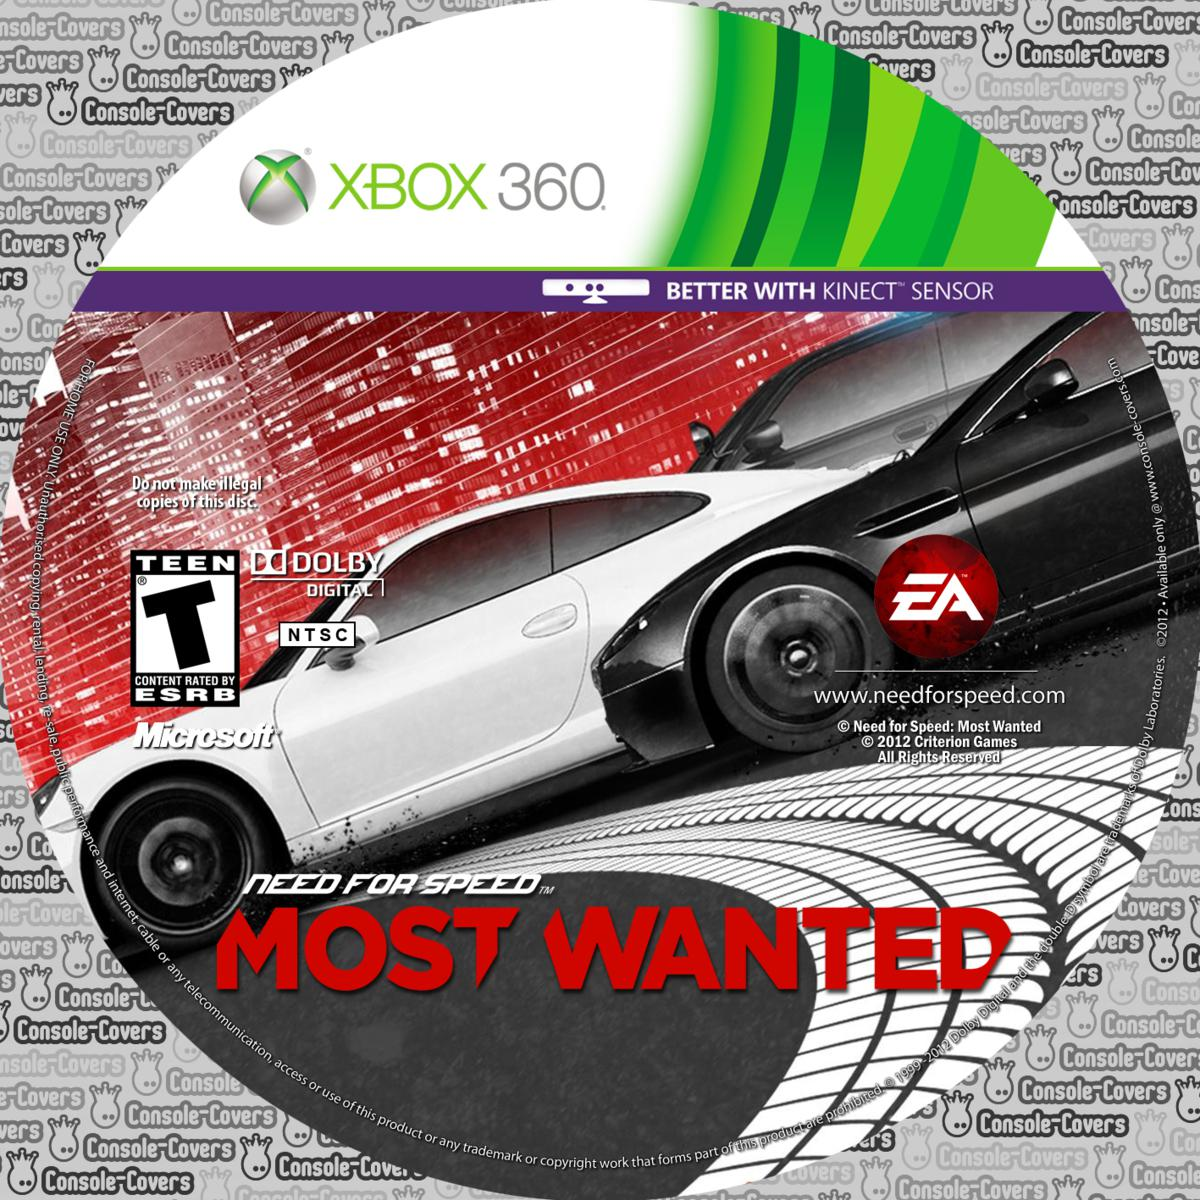 need for speed most wanted cheats xbox 360 need for speed most wanted ...